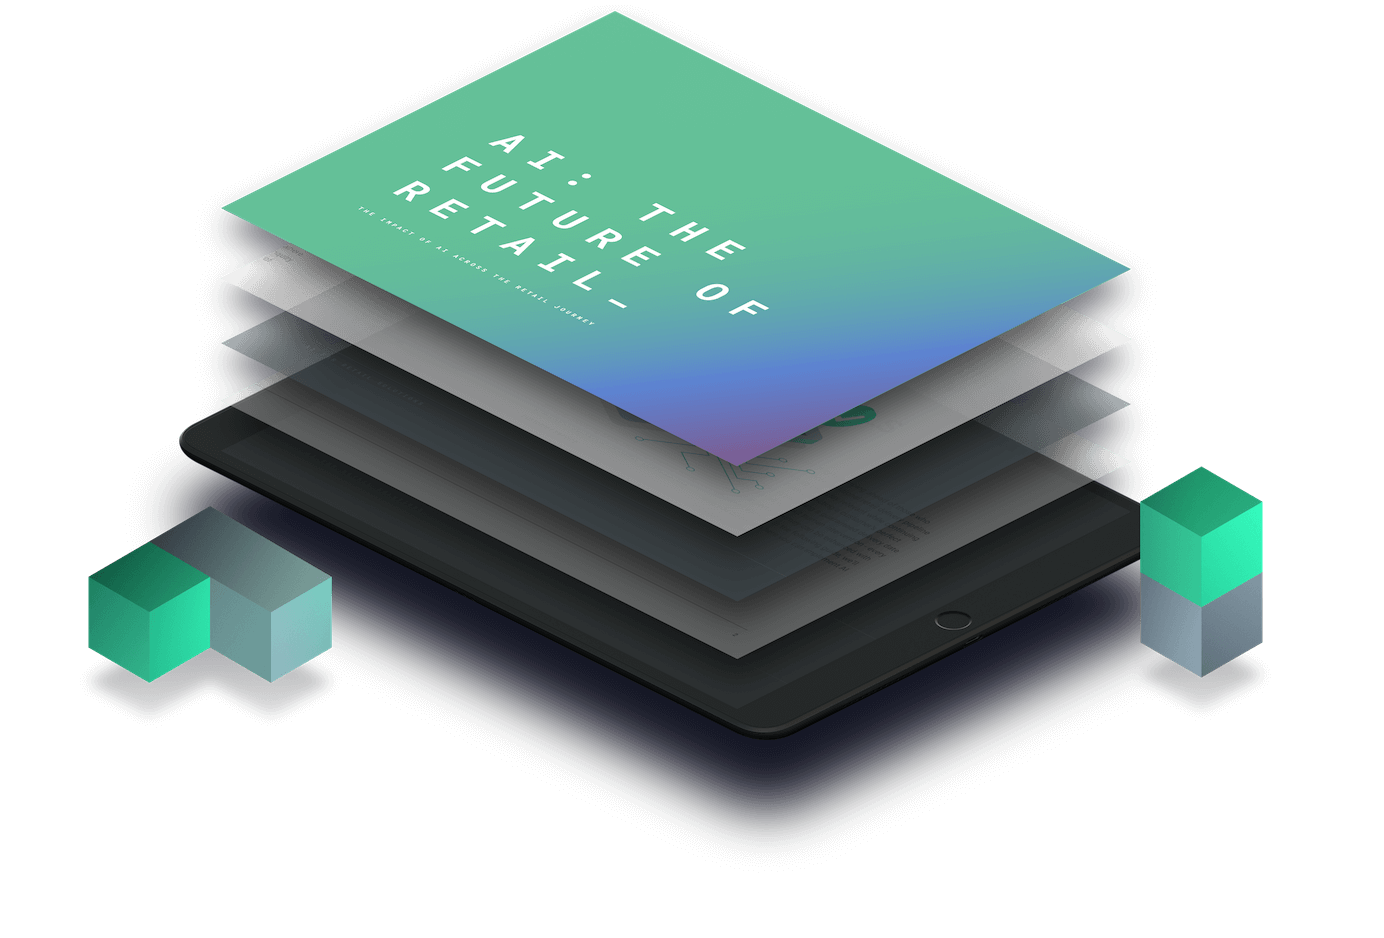 AI future of retail guide coming out of a tablet